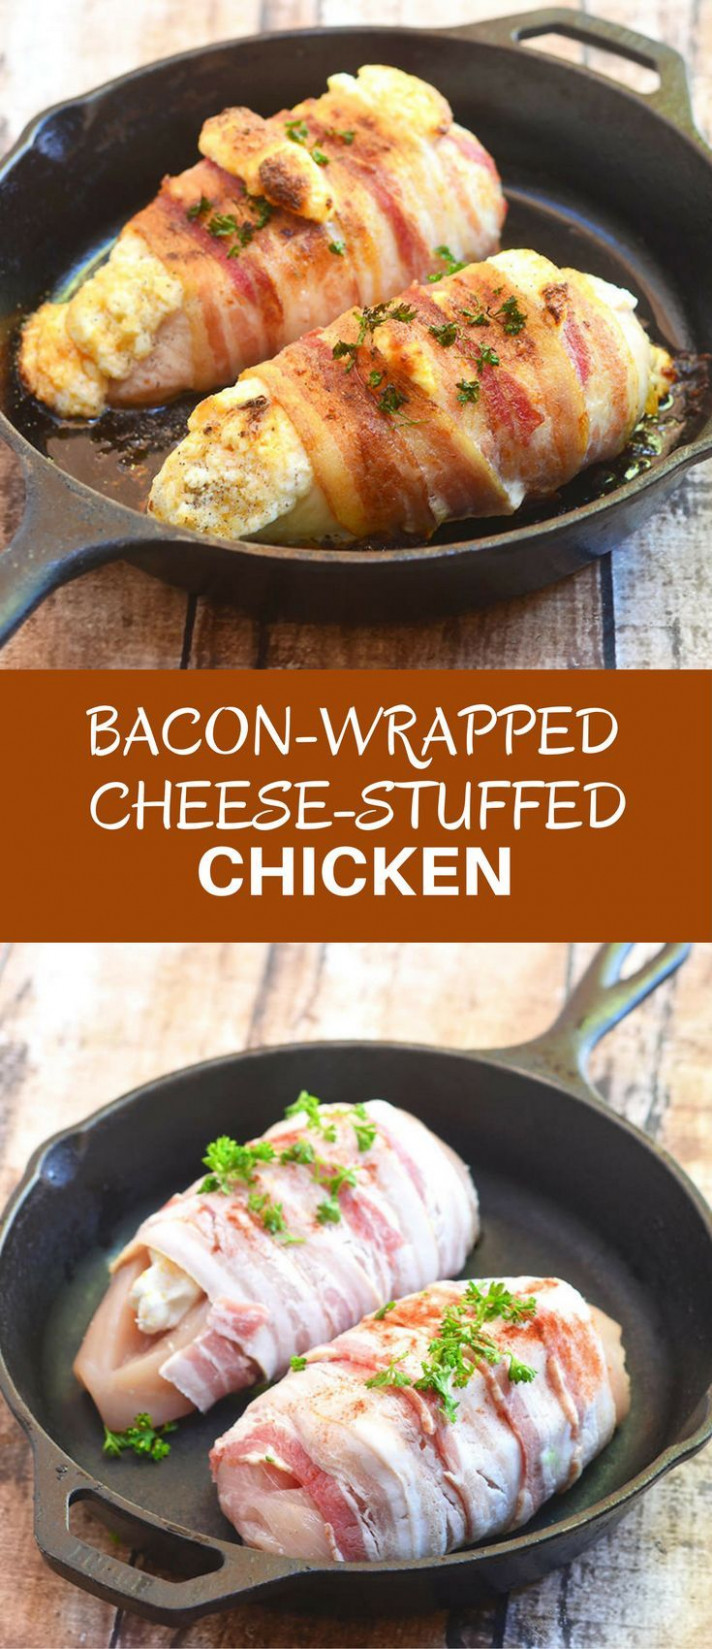 Bacon-Wrapped Cheese-Stuffed Chicken | Recipe | Delicious ..